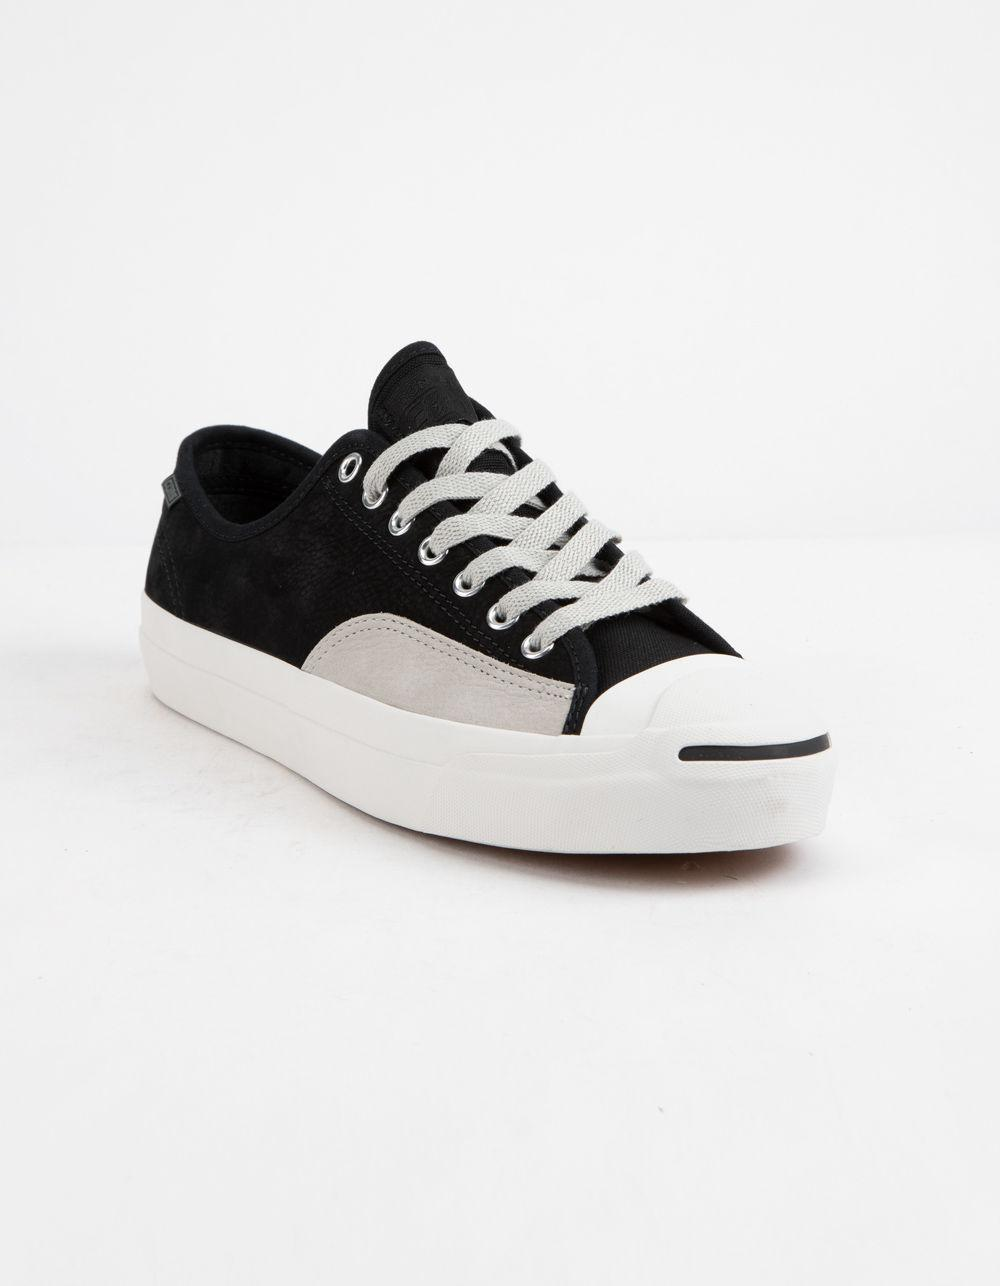 146e4376d167 Converse - Black Jack Purcell Pro Leather Low Top Shoes - Lyst. View  fullscreen